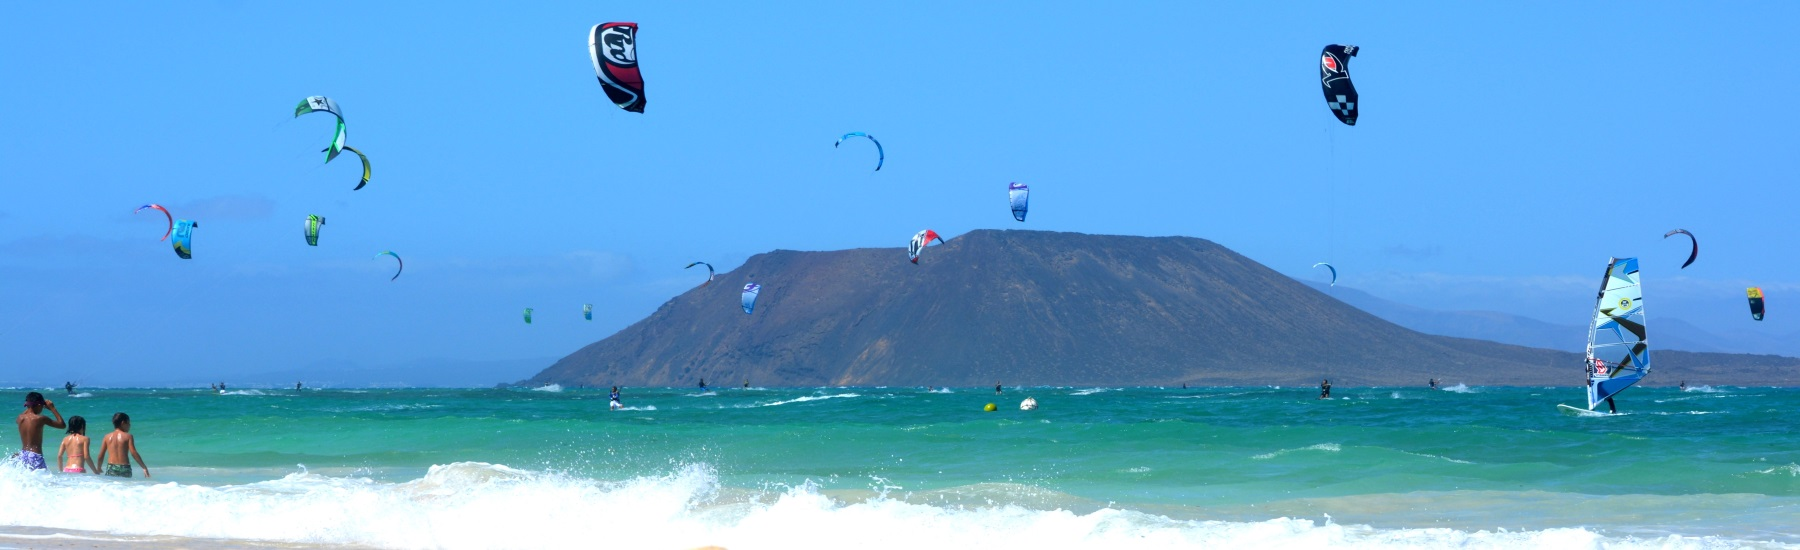 wind surfing and kite surfing in Fuerteventura